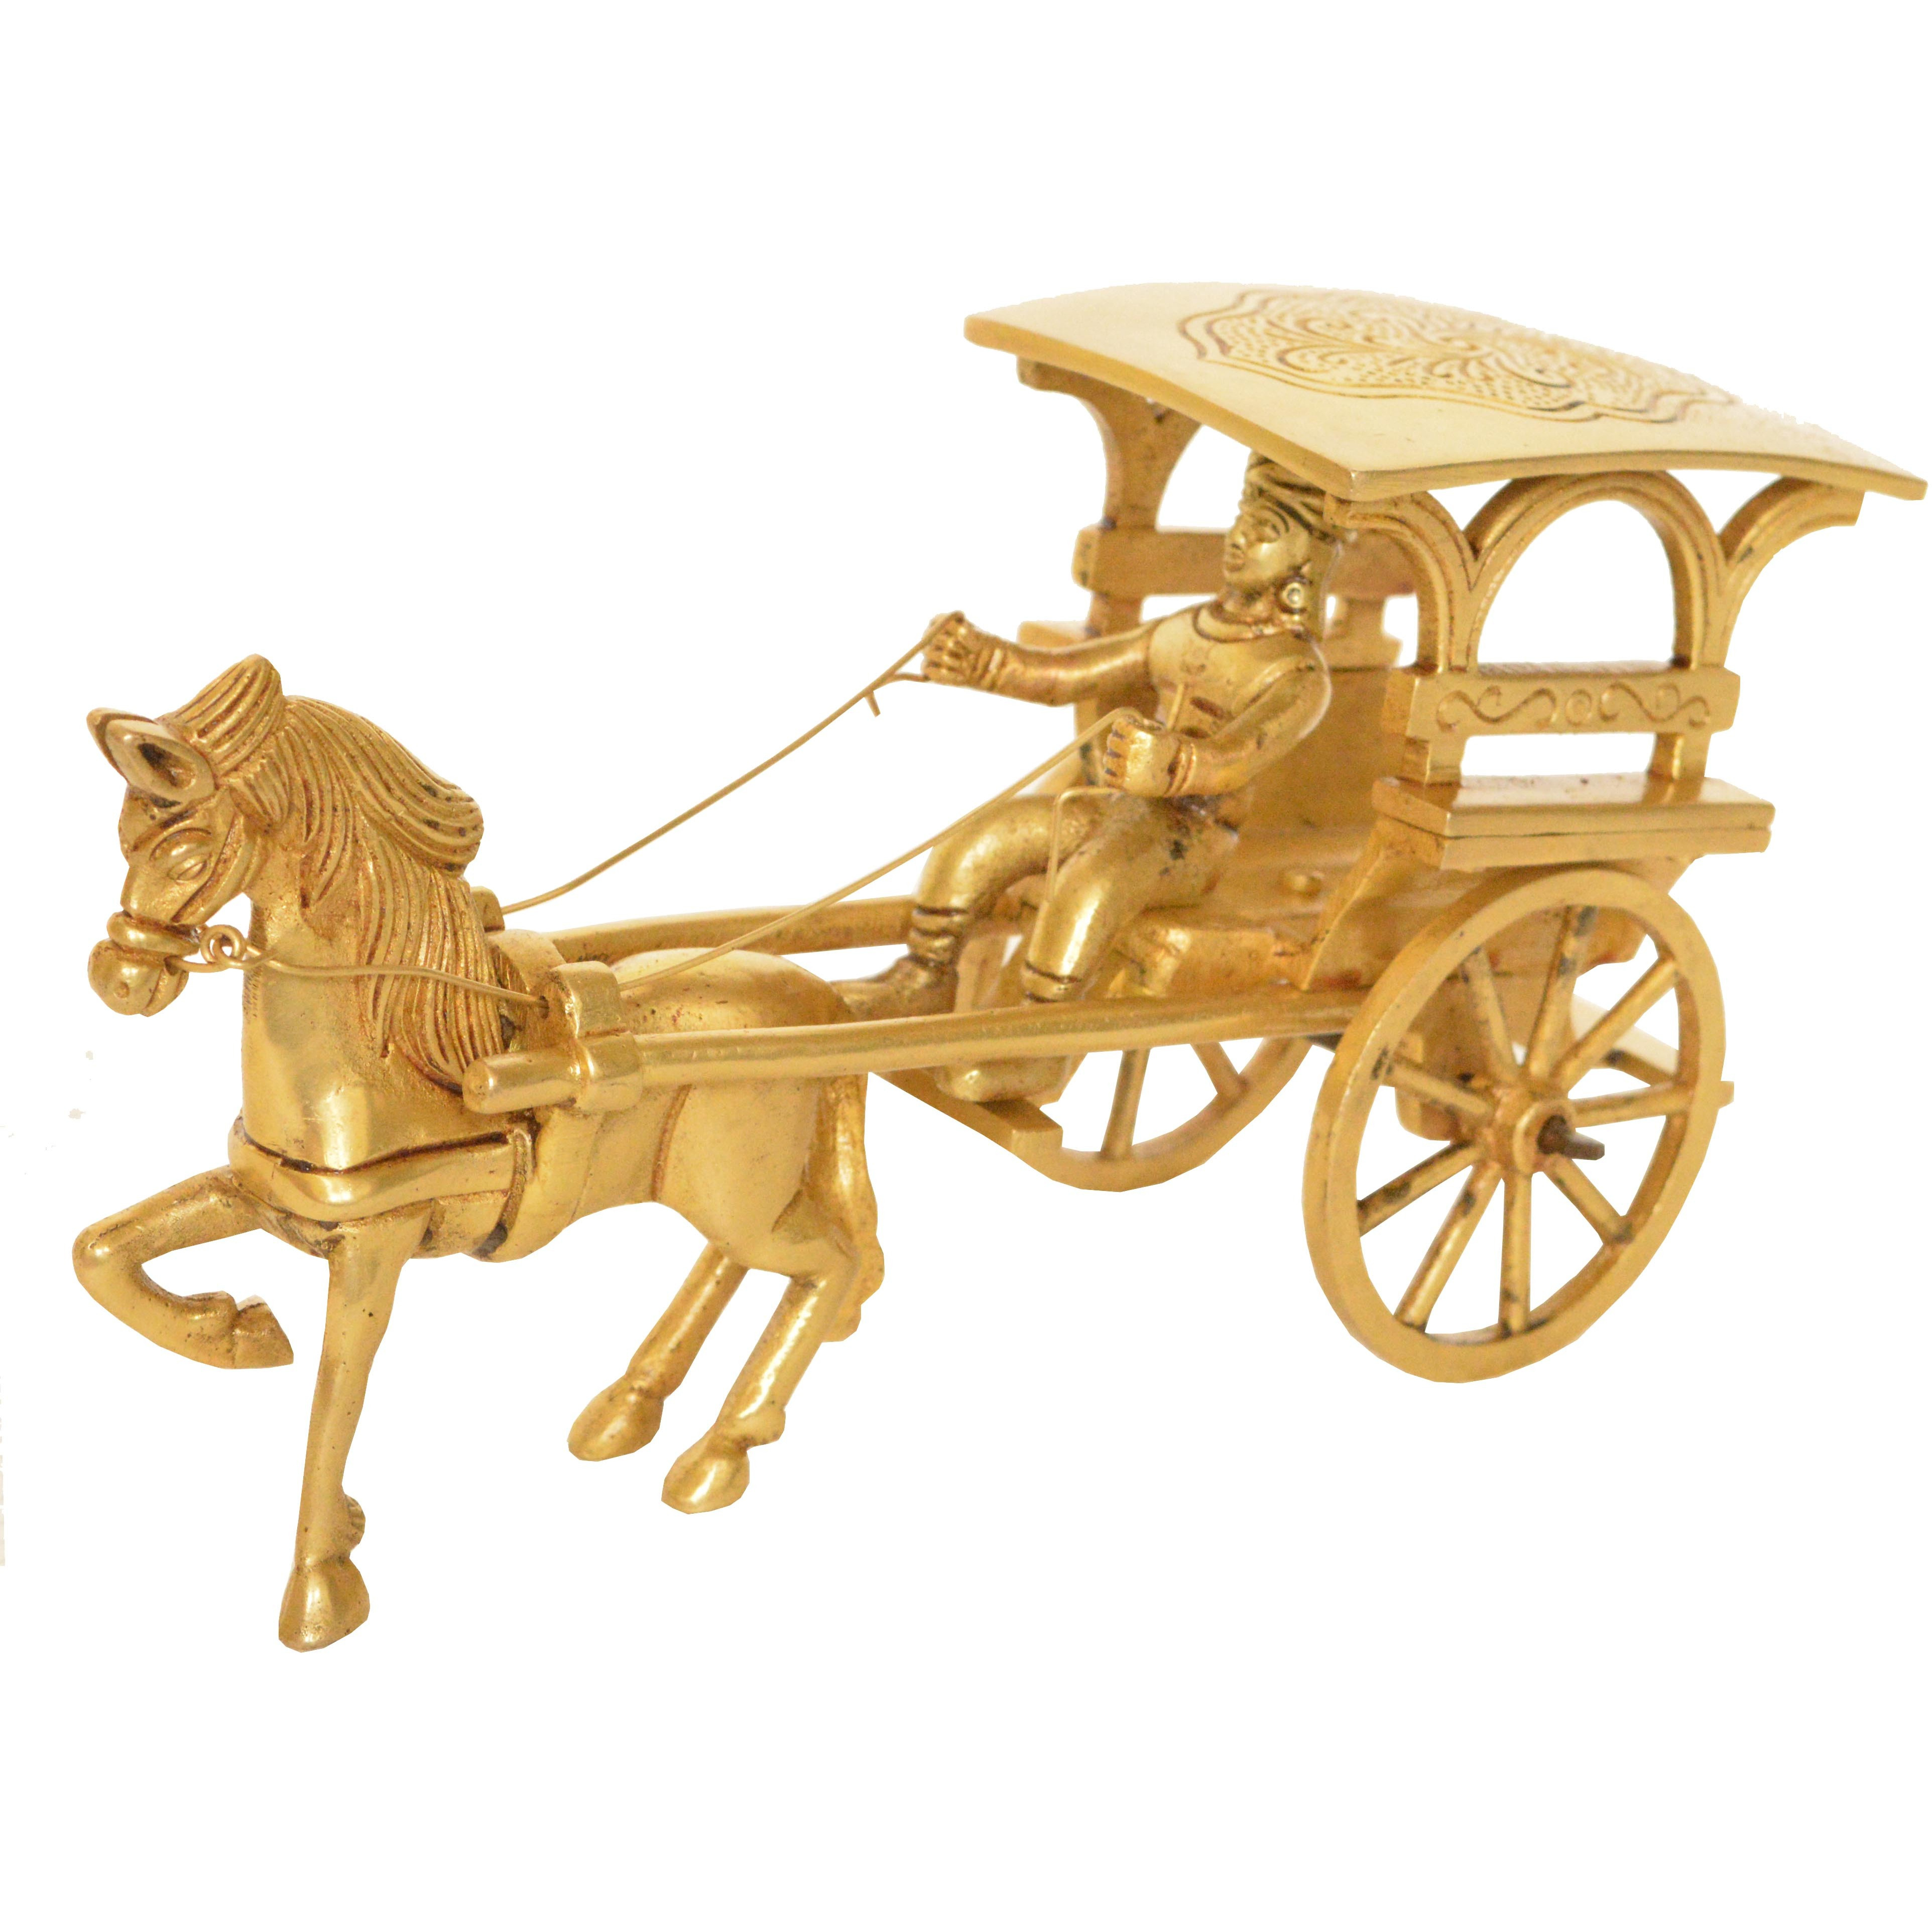 Vintage Brass Carriage Horse Cart - Desk Showpiece/Metal Decorative Gift with Wheel Pull Figurine Statue - Home Decor - Indian Metal Craft - Antique Collection